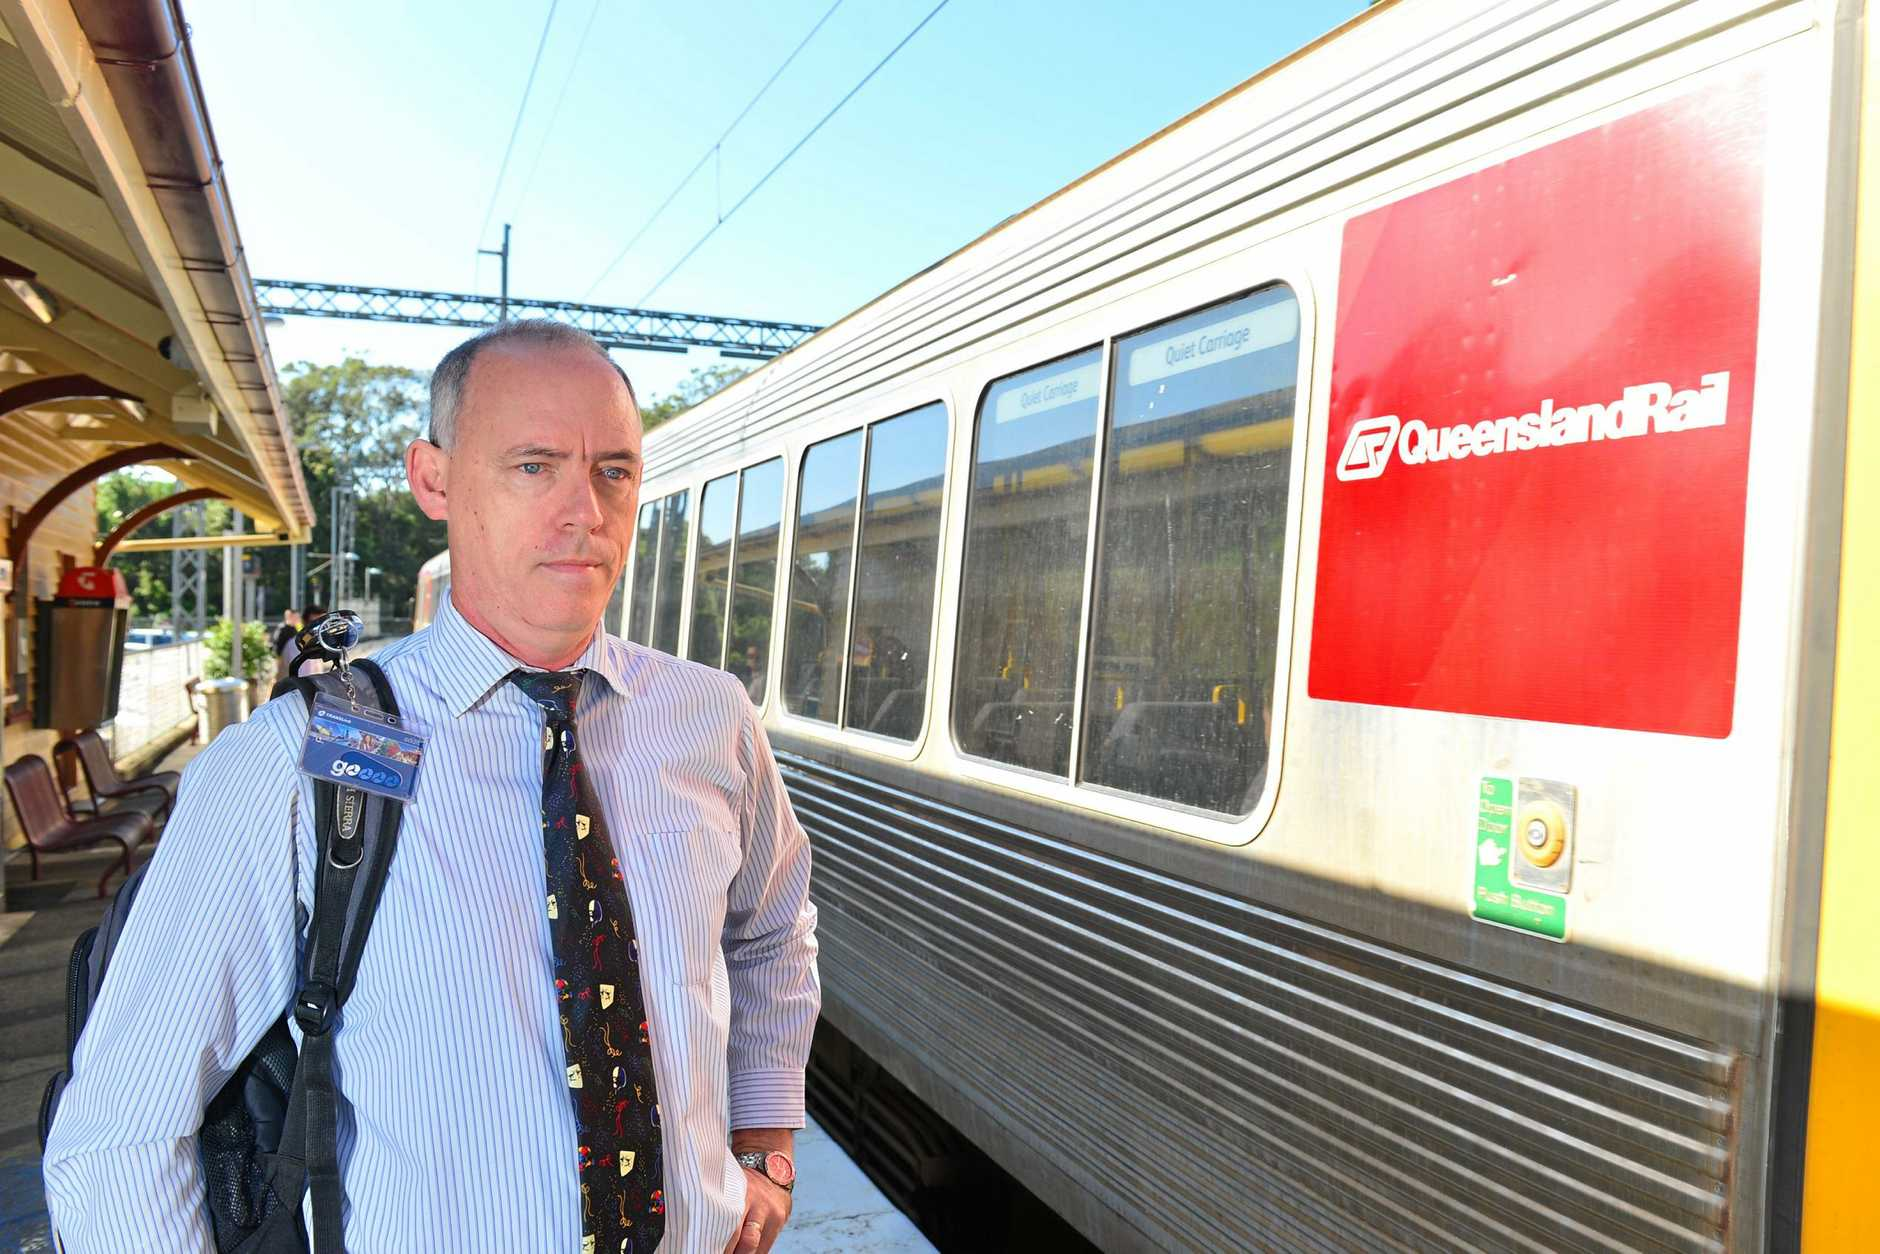 SC RAIL Back on Track spokesman Jeff Addison is hopeful of  some success looking with rail duplication, with both LNP and One Nation committing to funding the project, after nearly 10 years of fighting by Jeff and others for duplication.